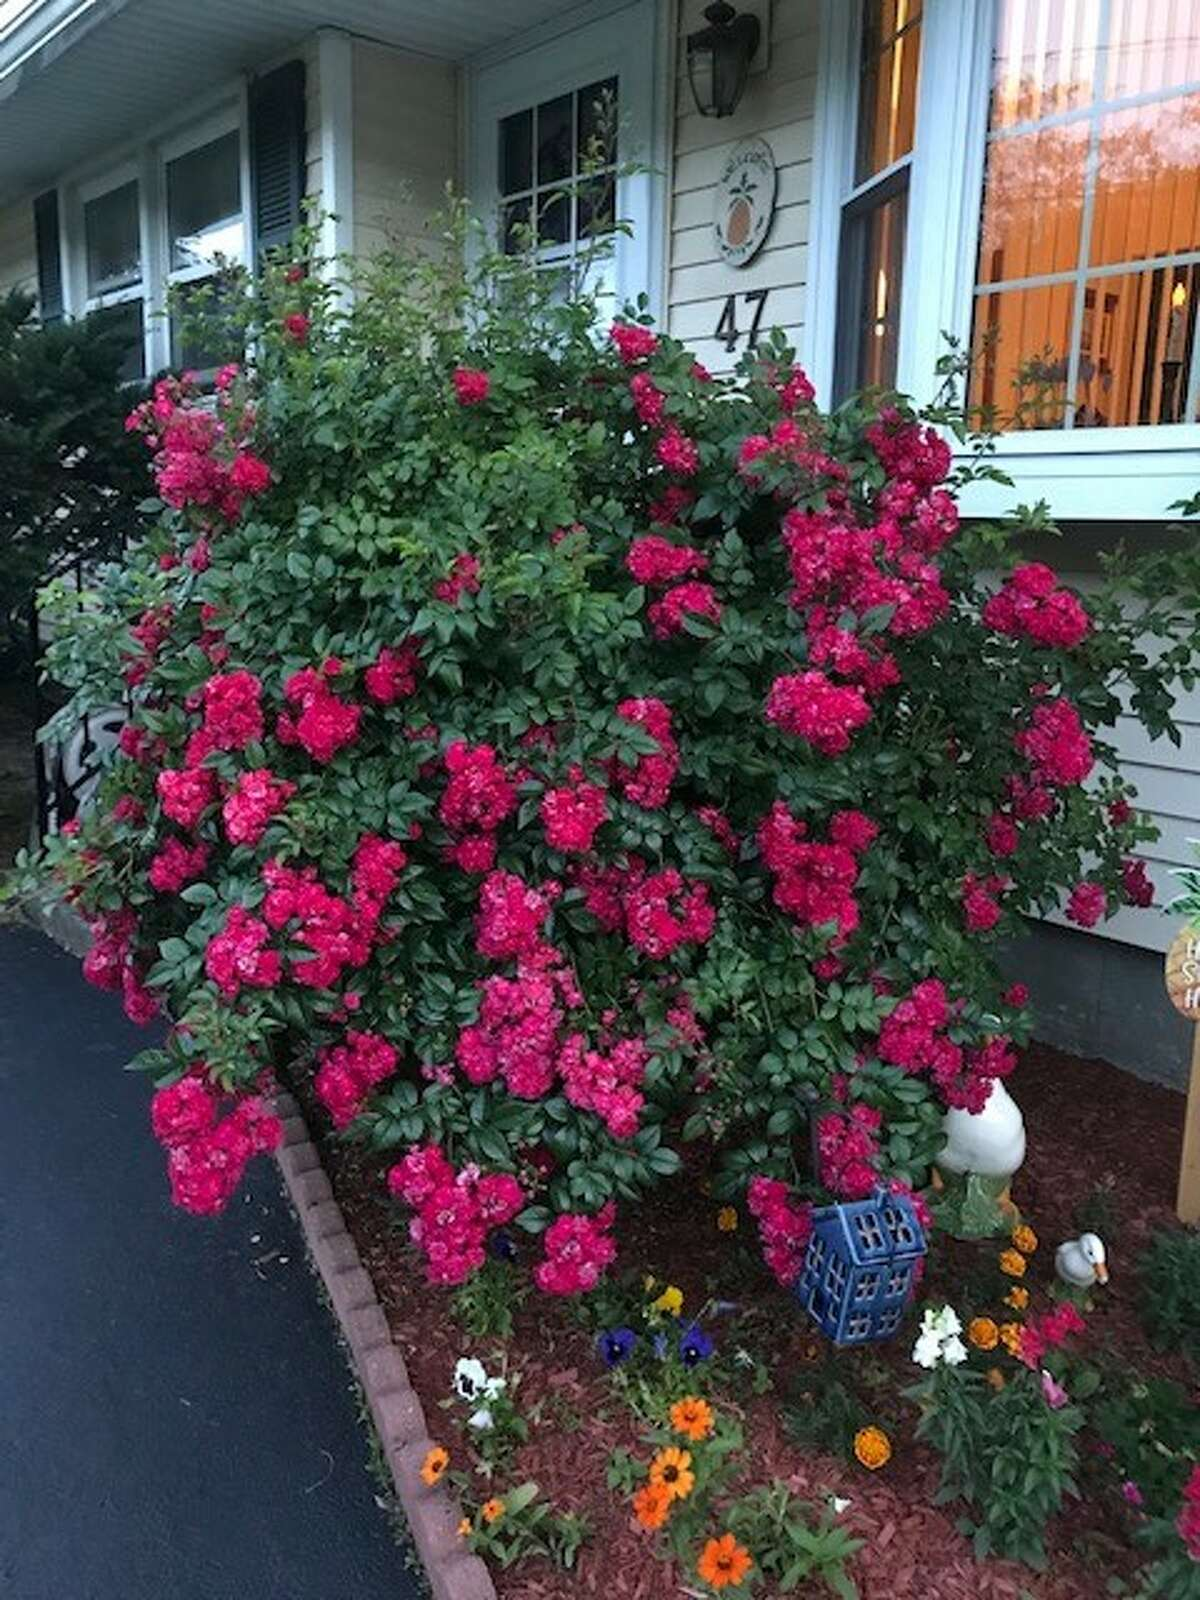 Tea roses are in bloom at the home of Mike Novack of Loudonville.